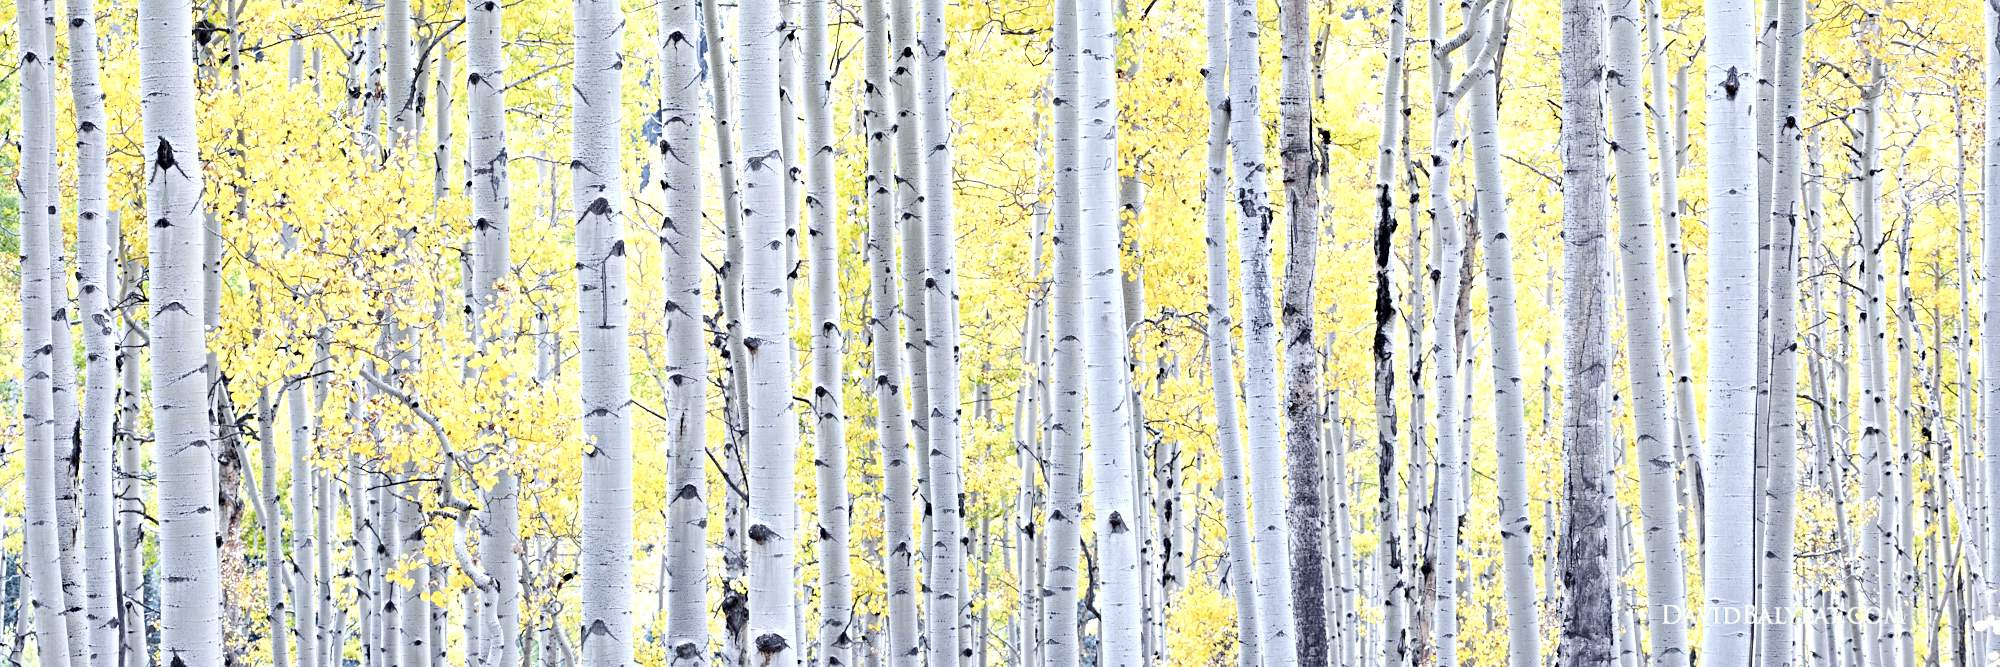 Aspen trees panoramic fall foliage autumn Colorado high-definition HD professional landscape photography